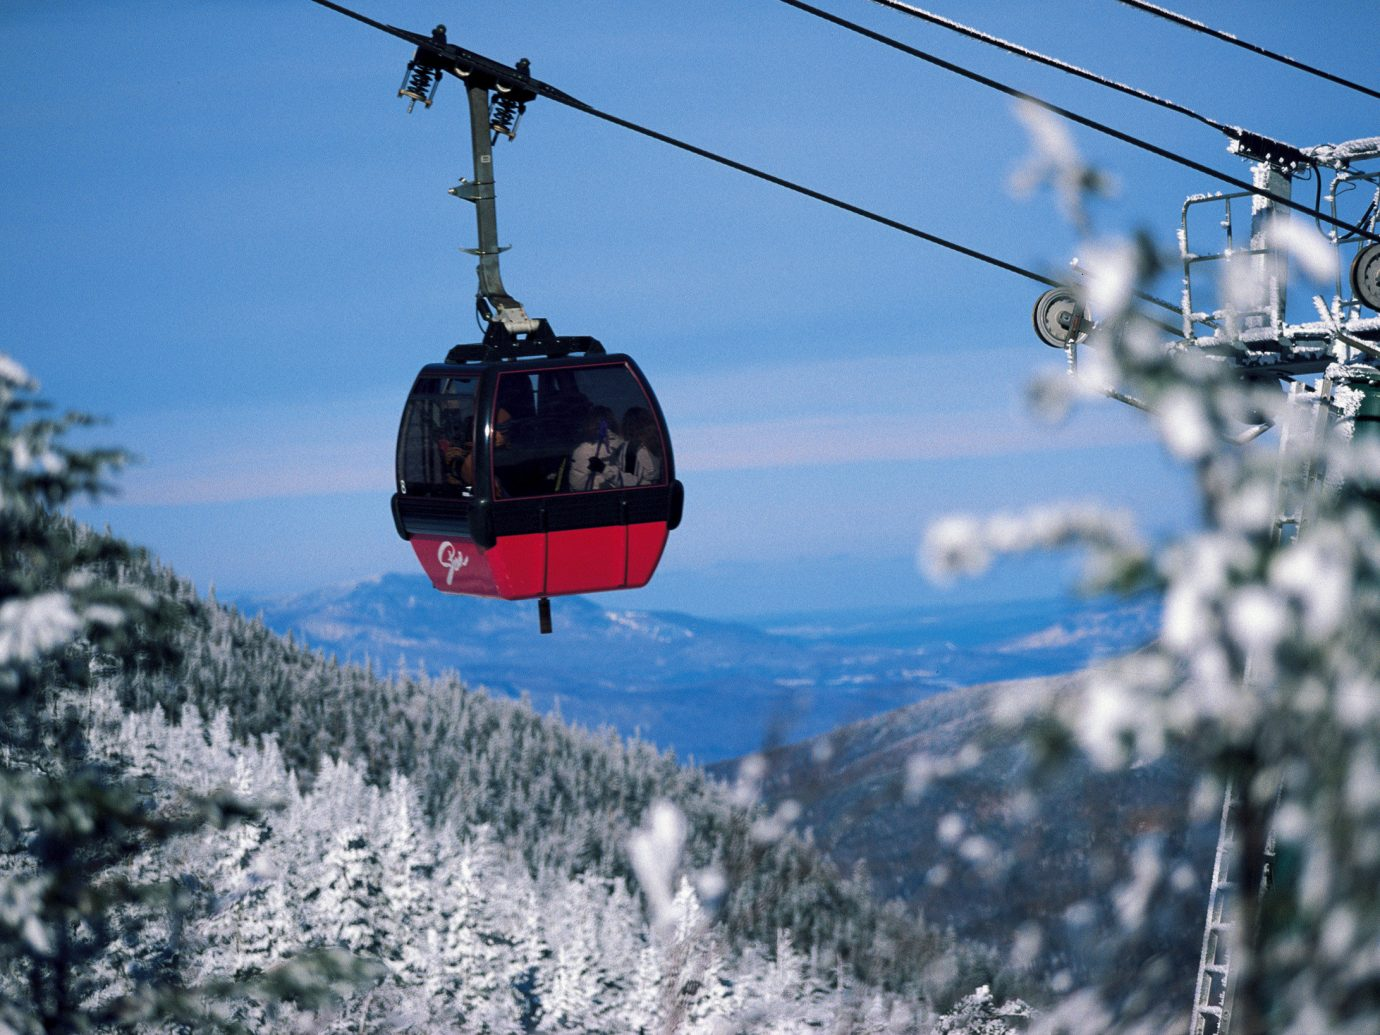 Hotels Weekend Getaways outdoor sky snow cable car ski tow vehicle helicopter transport aircraft atmosphere of earth rotorcraft aviation mountain range slope day